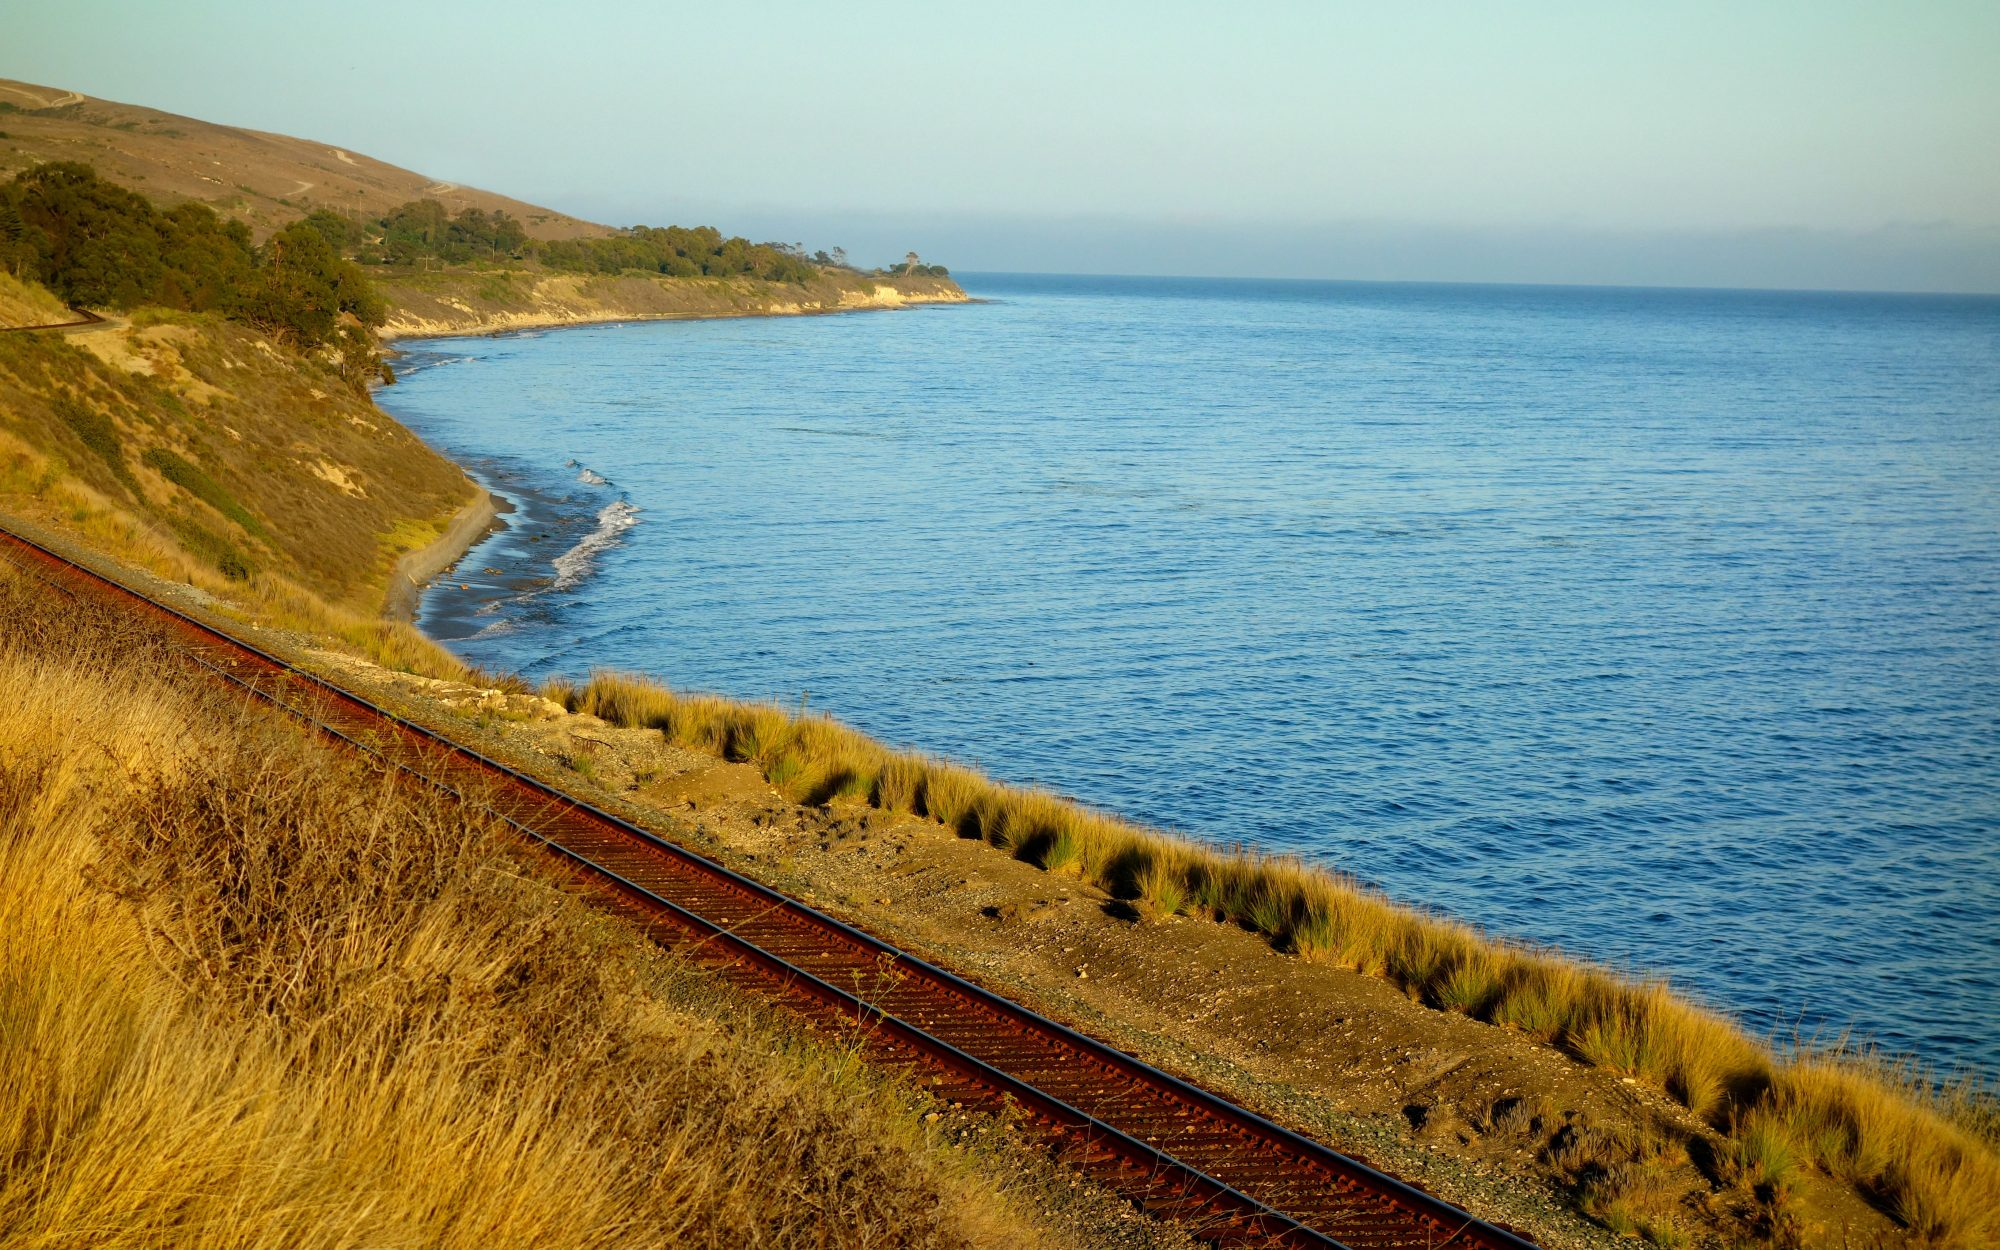 America's Most Romantic Train Trips: Amtrak's Pacific Surfliner